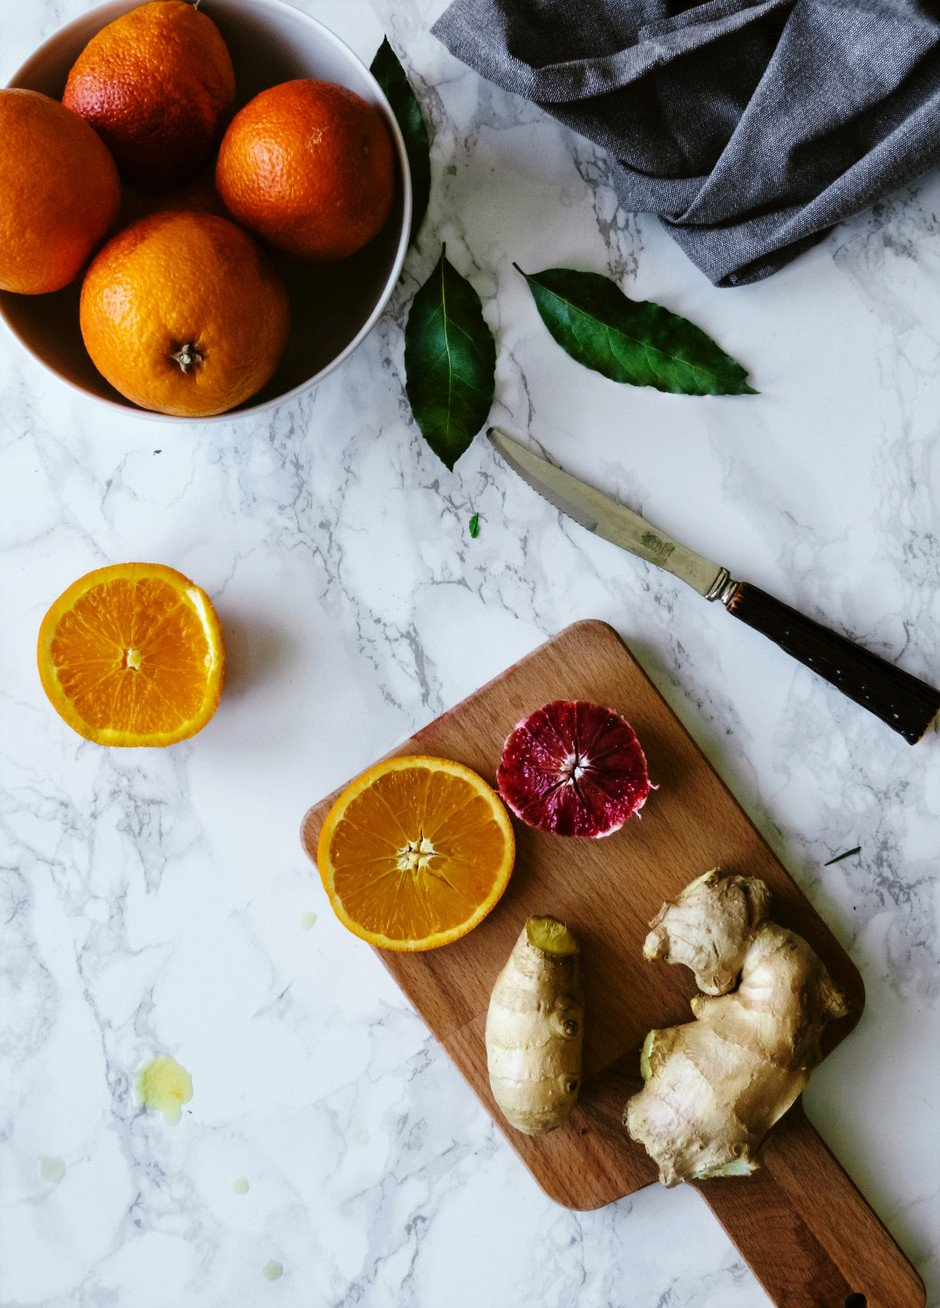 an overhead image of a cutting board with citrus slices, ginger and a knife.